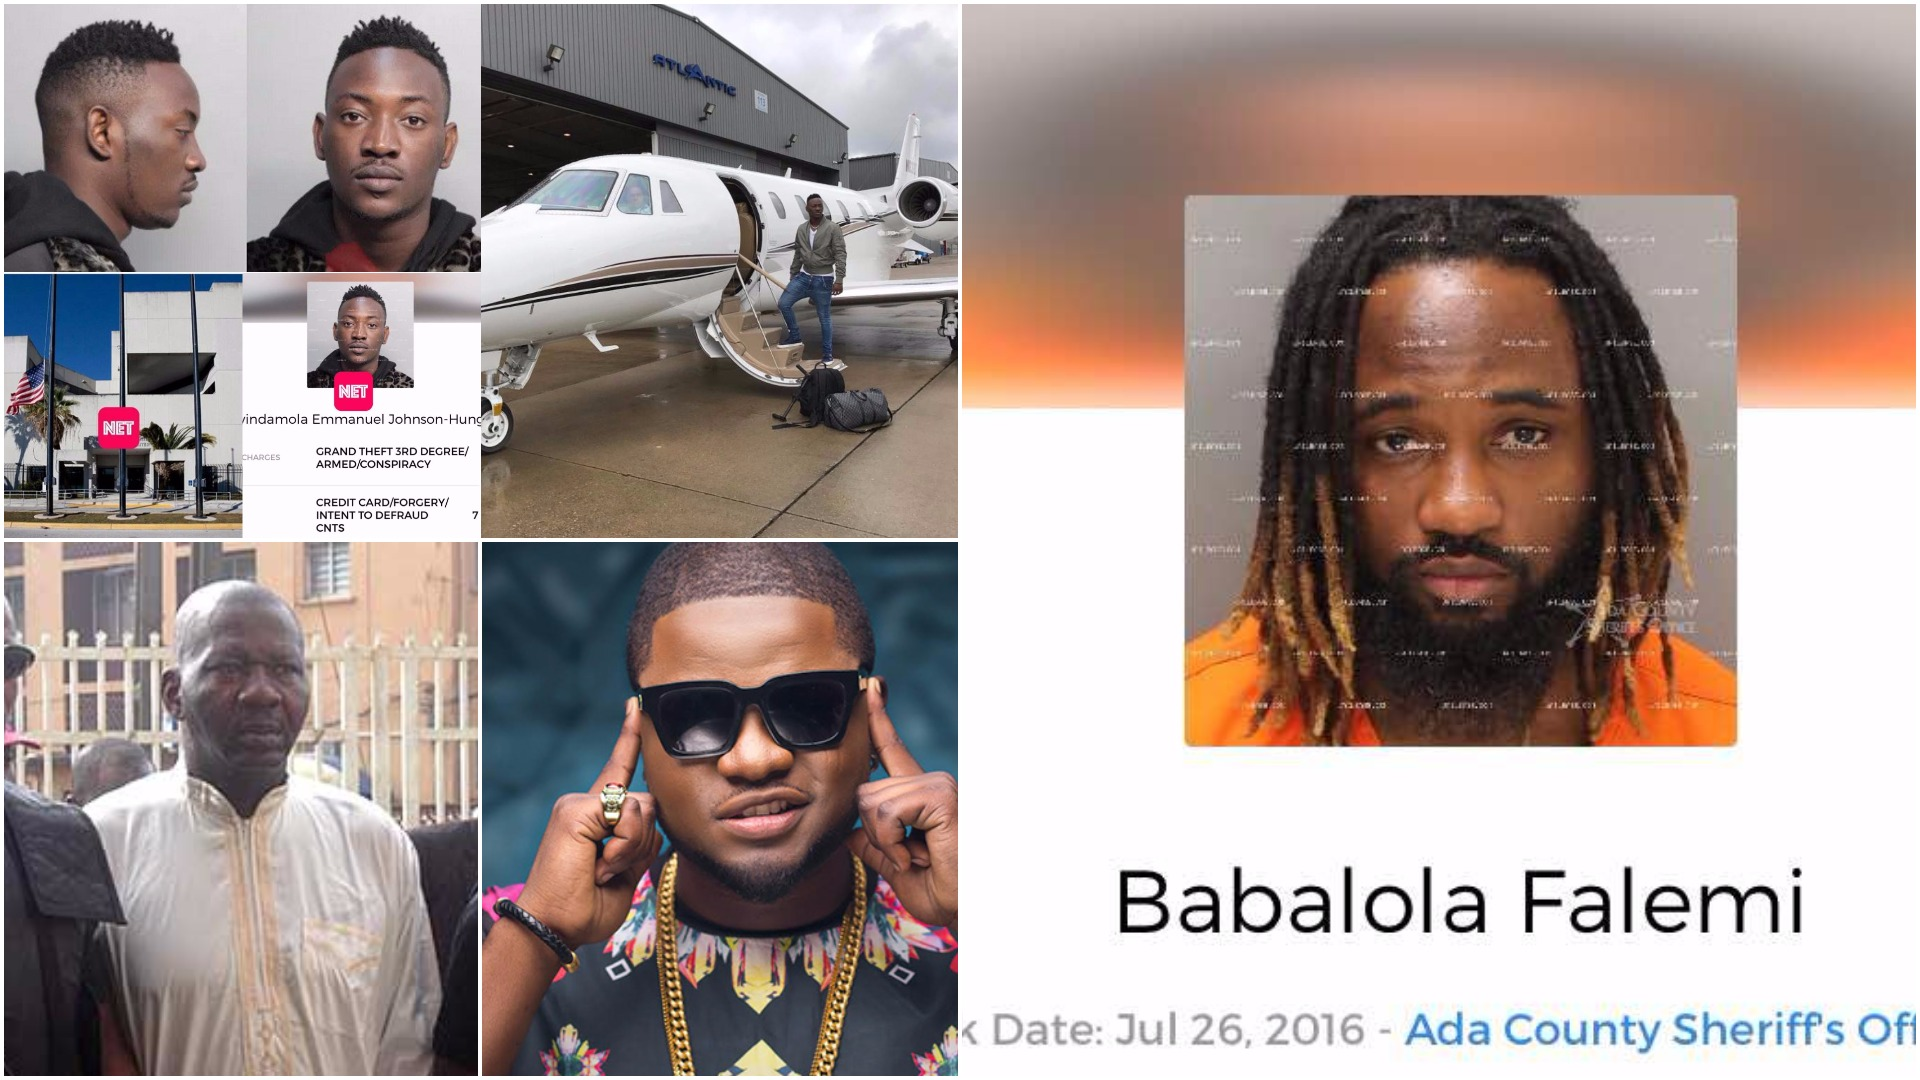 See Nigerian celebrities who have been in major trouble with the law